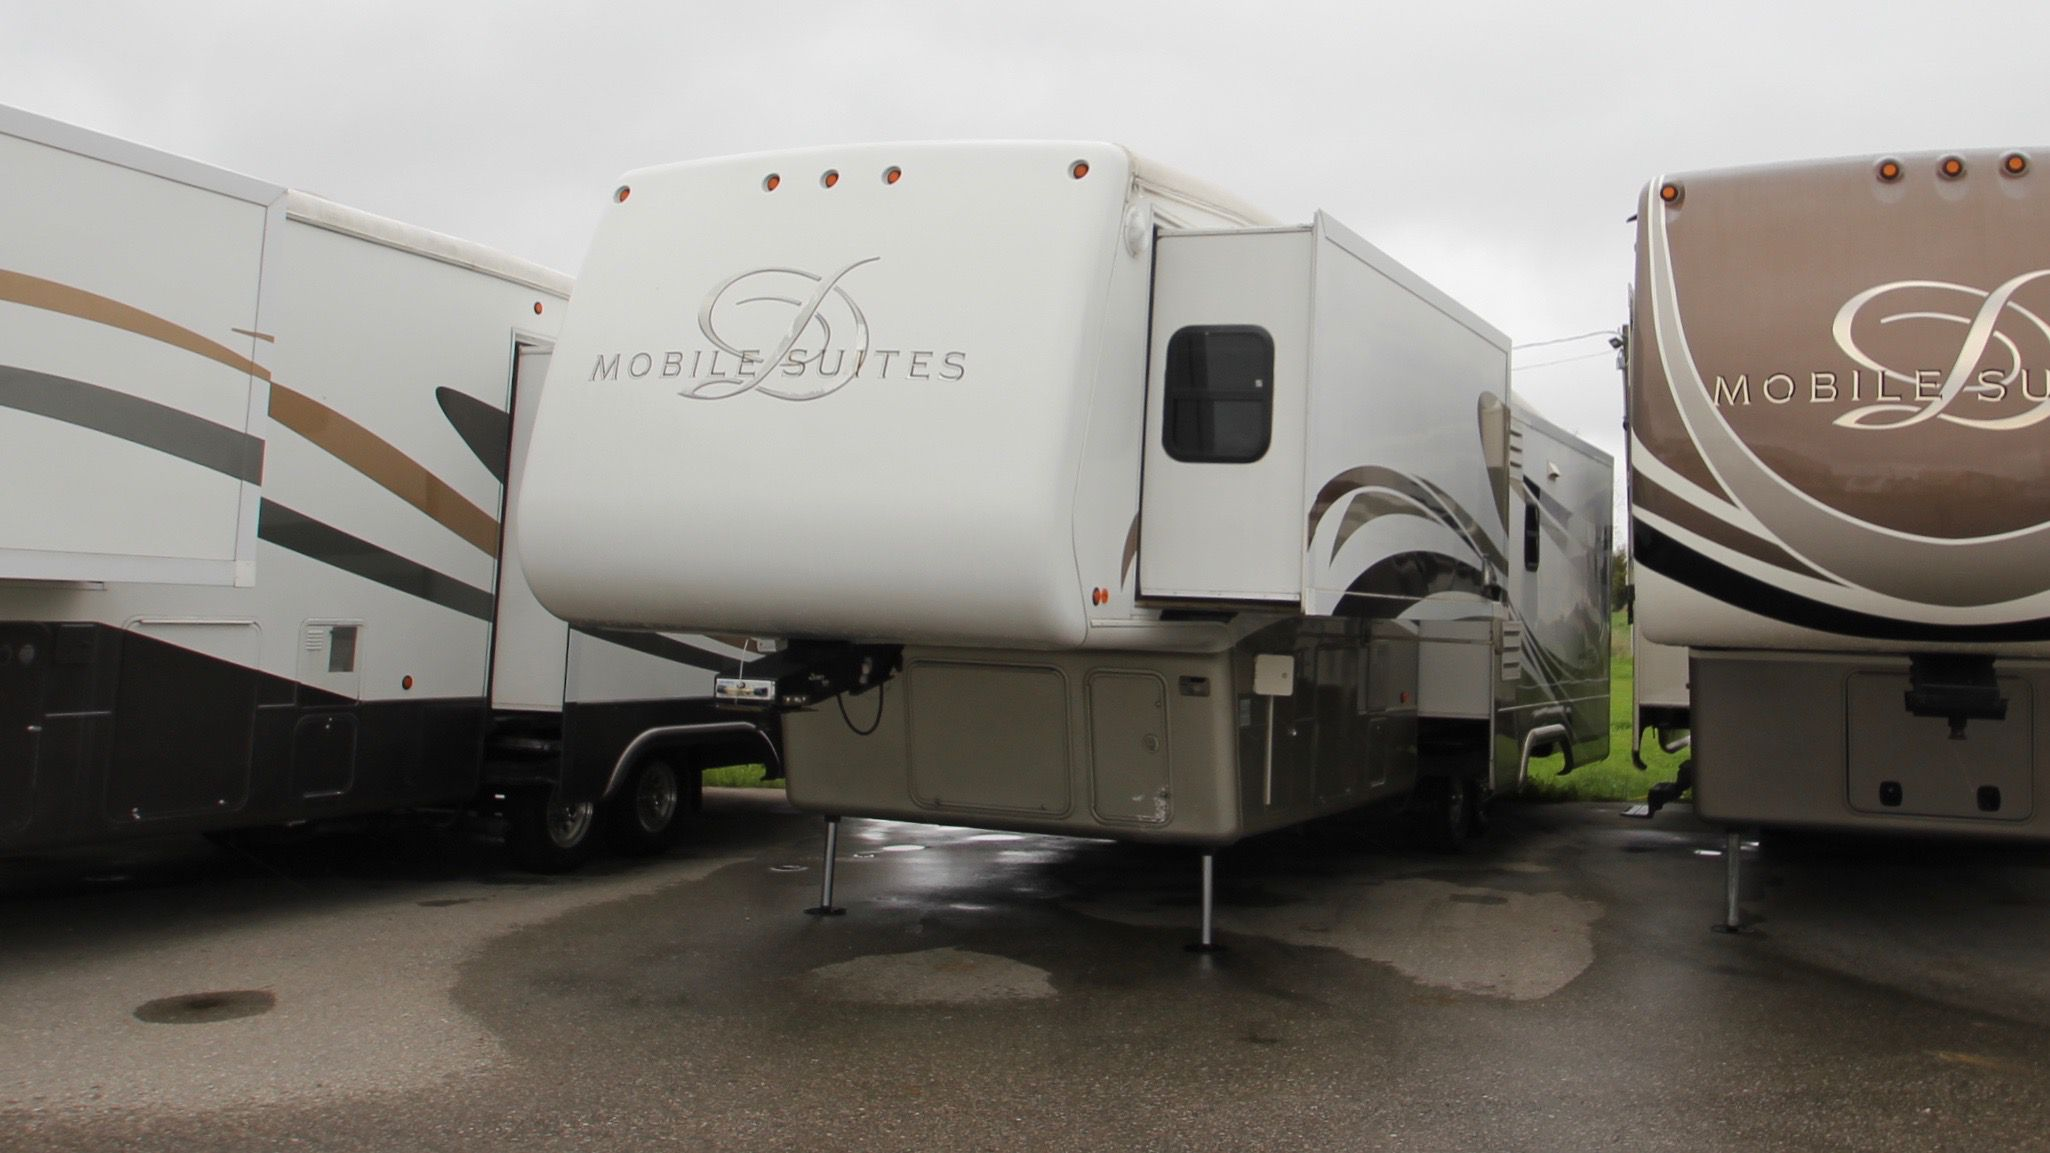 2007 DOUBLE TREE MOBILE SUITES 36SB3